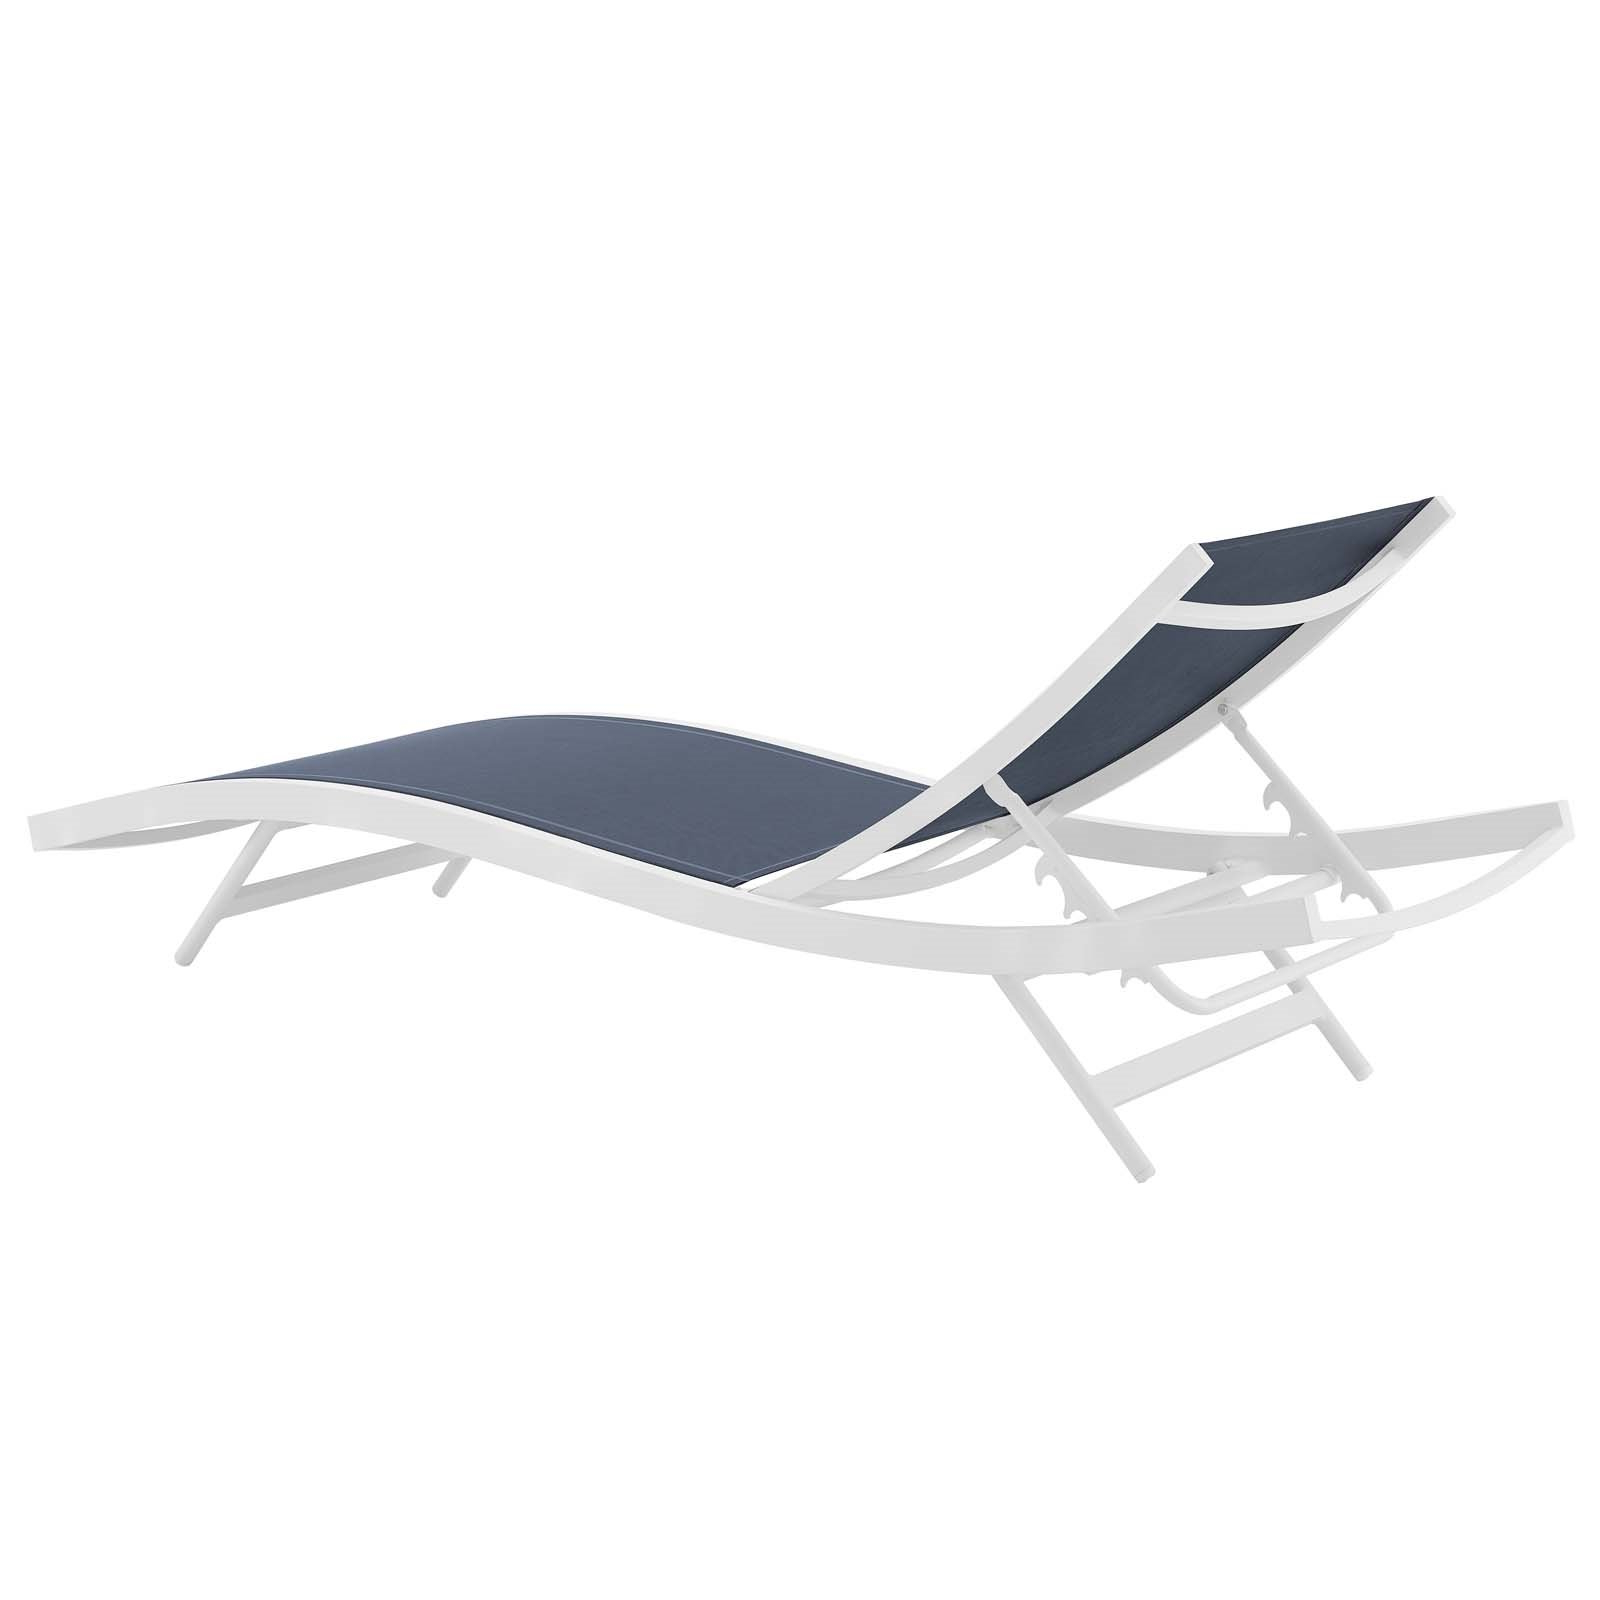 Glimpse Outdoor Patio Mesh Chaise Lounge Chairs Regarding Most Recently Released Glimpse Outdoor Patio Mesh Chaise Lounge Chair (View 5 of 25)